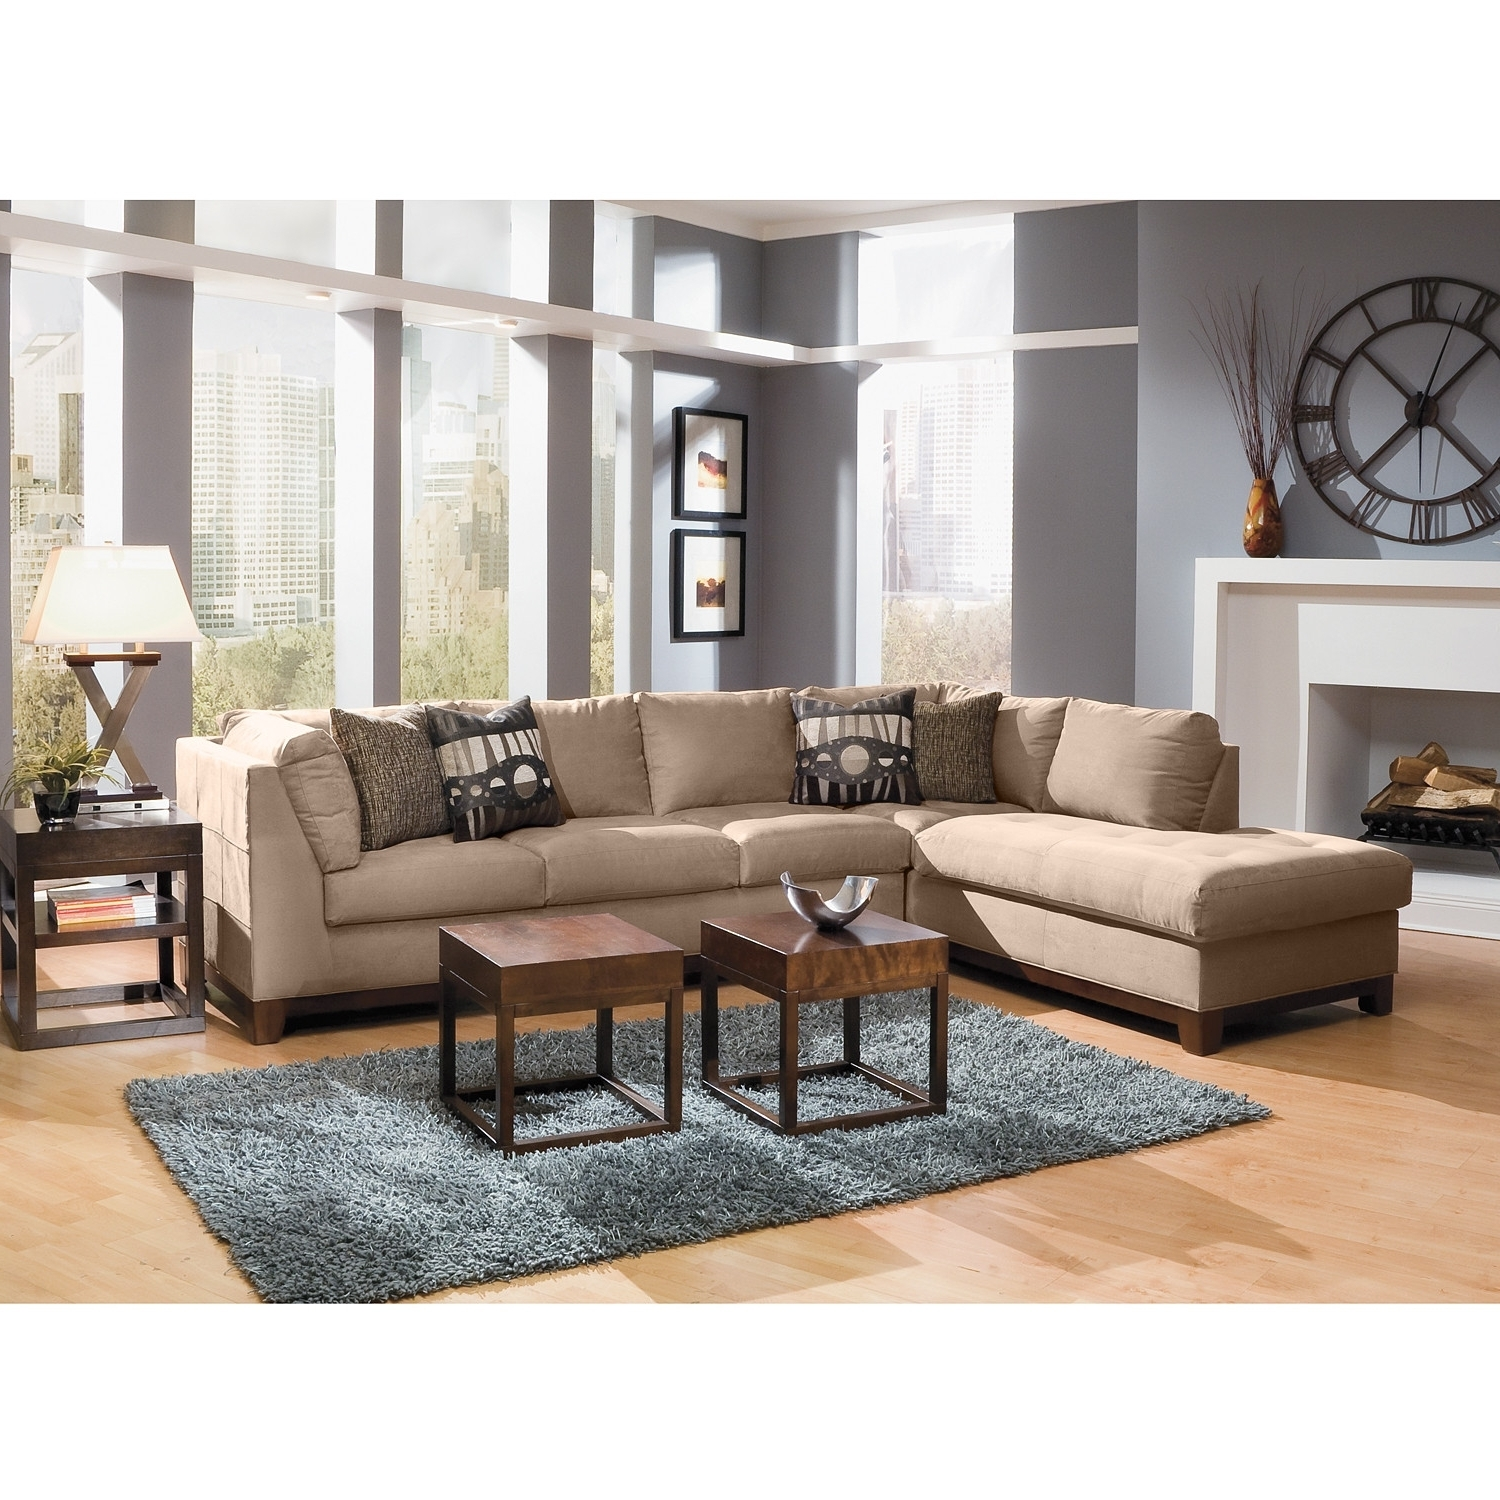 2018 American Furniture Warehouse Greensboro Nc Unique Fresh Sectional In Sectional Sofas In Greensboro Nc (View 6 of 20)